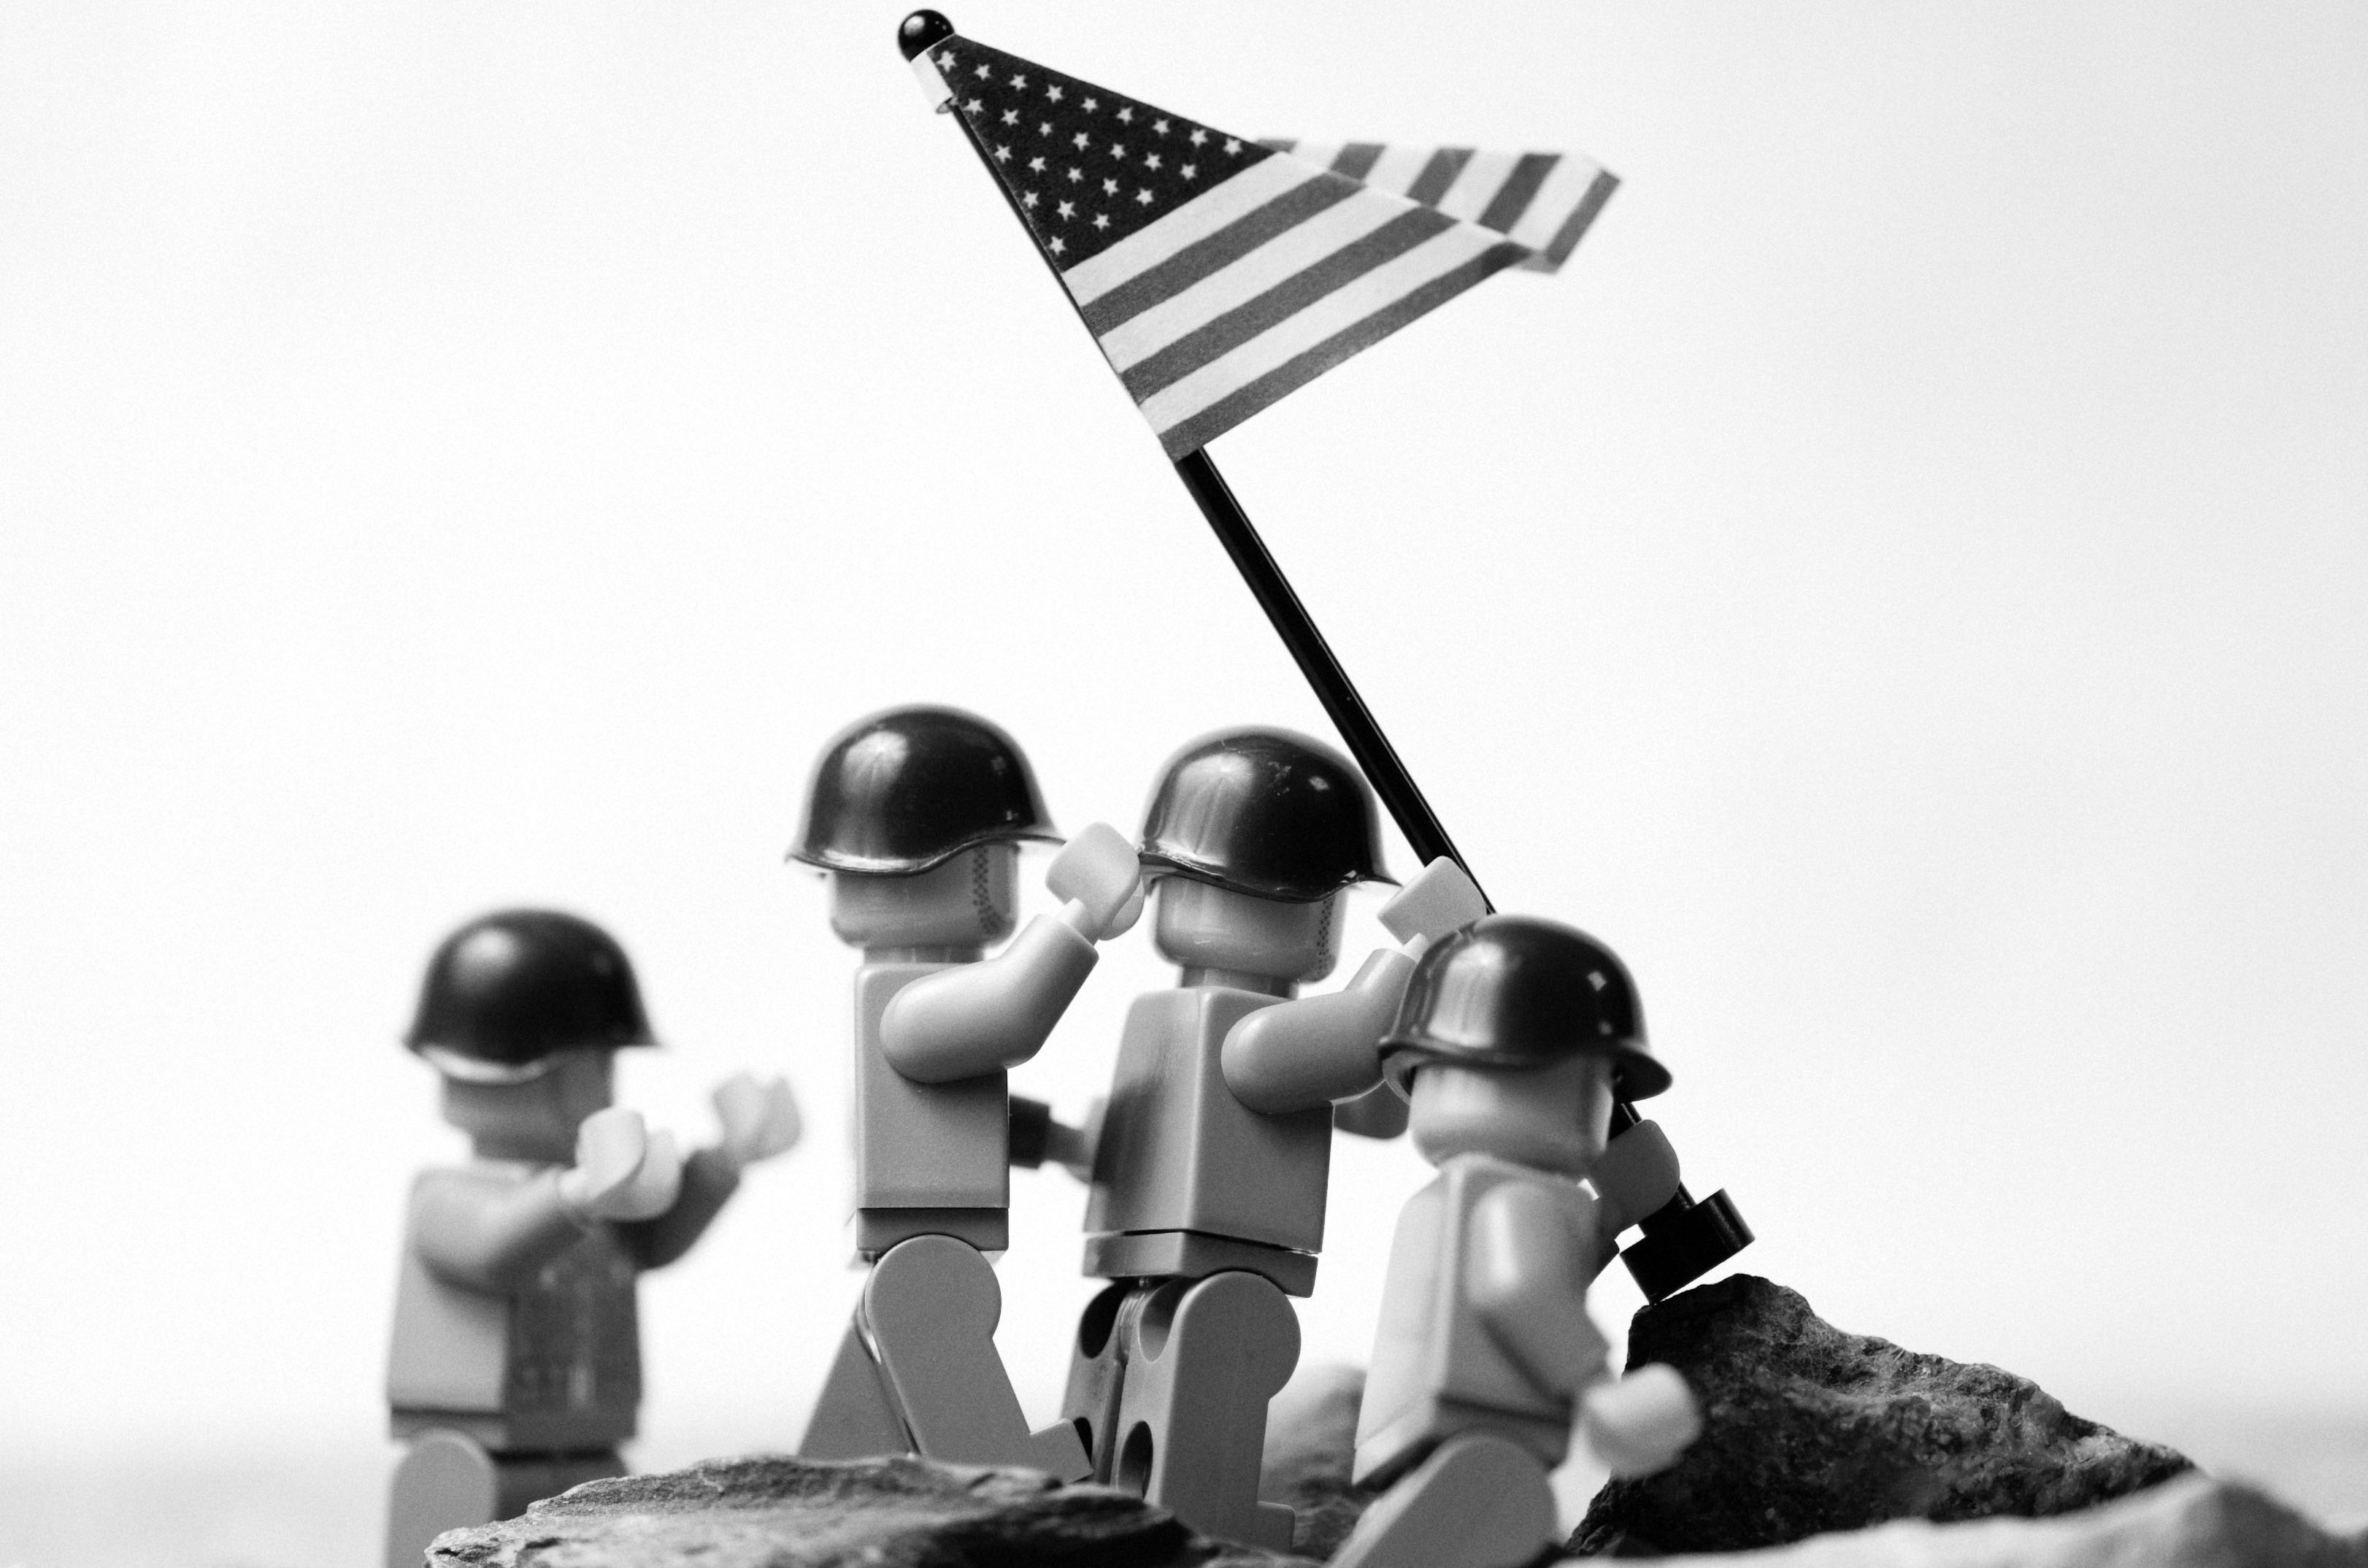 Lego parody monochrome American HD Wallpaper